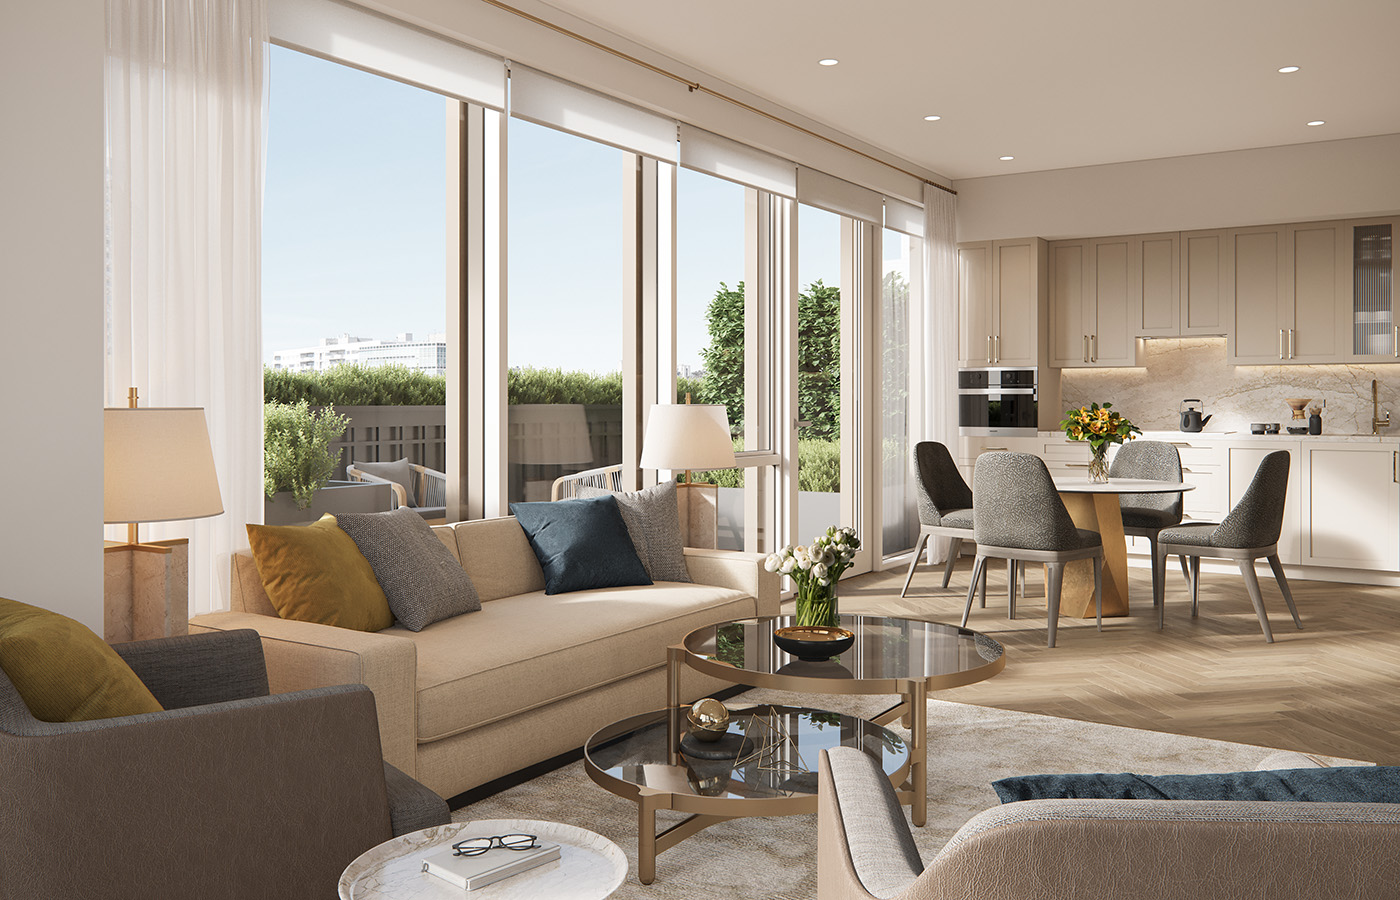 The sun-flooded living room and kitchen provide ample room for entertaining friends and family.